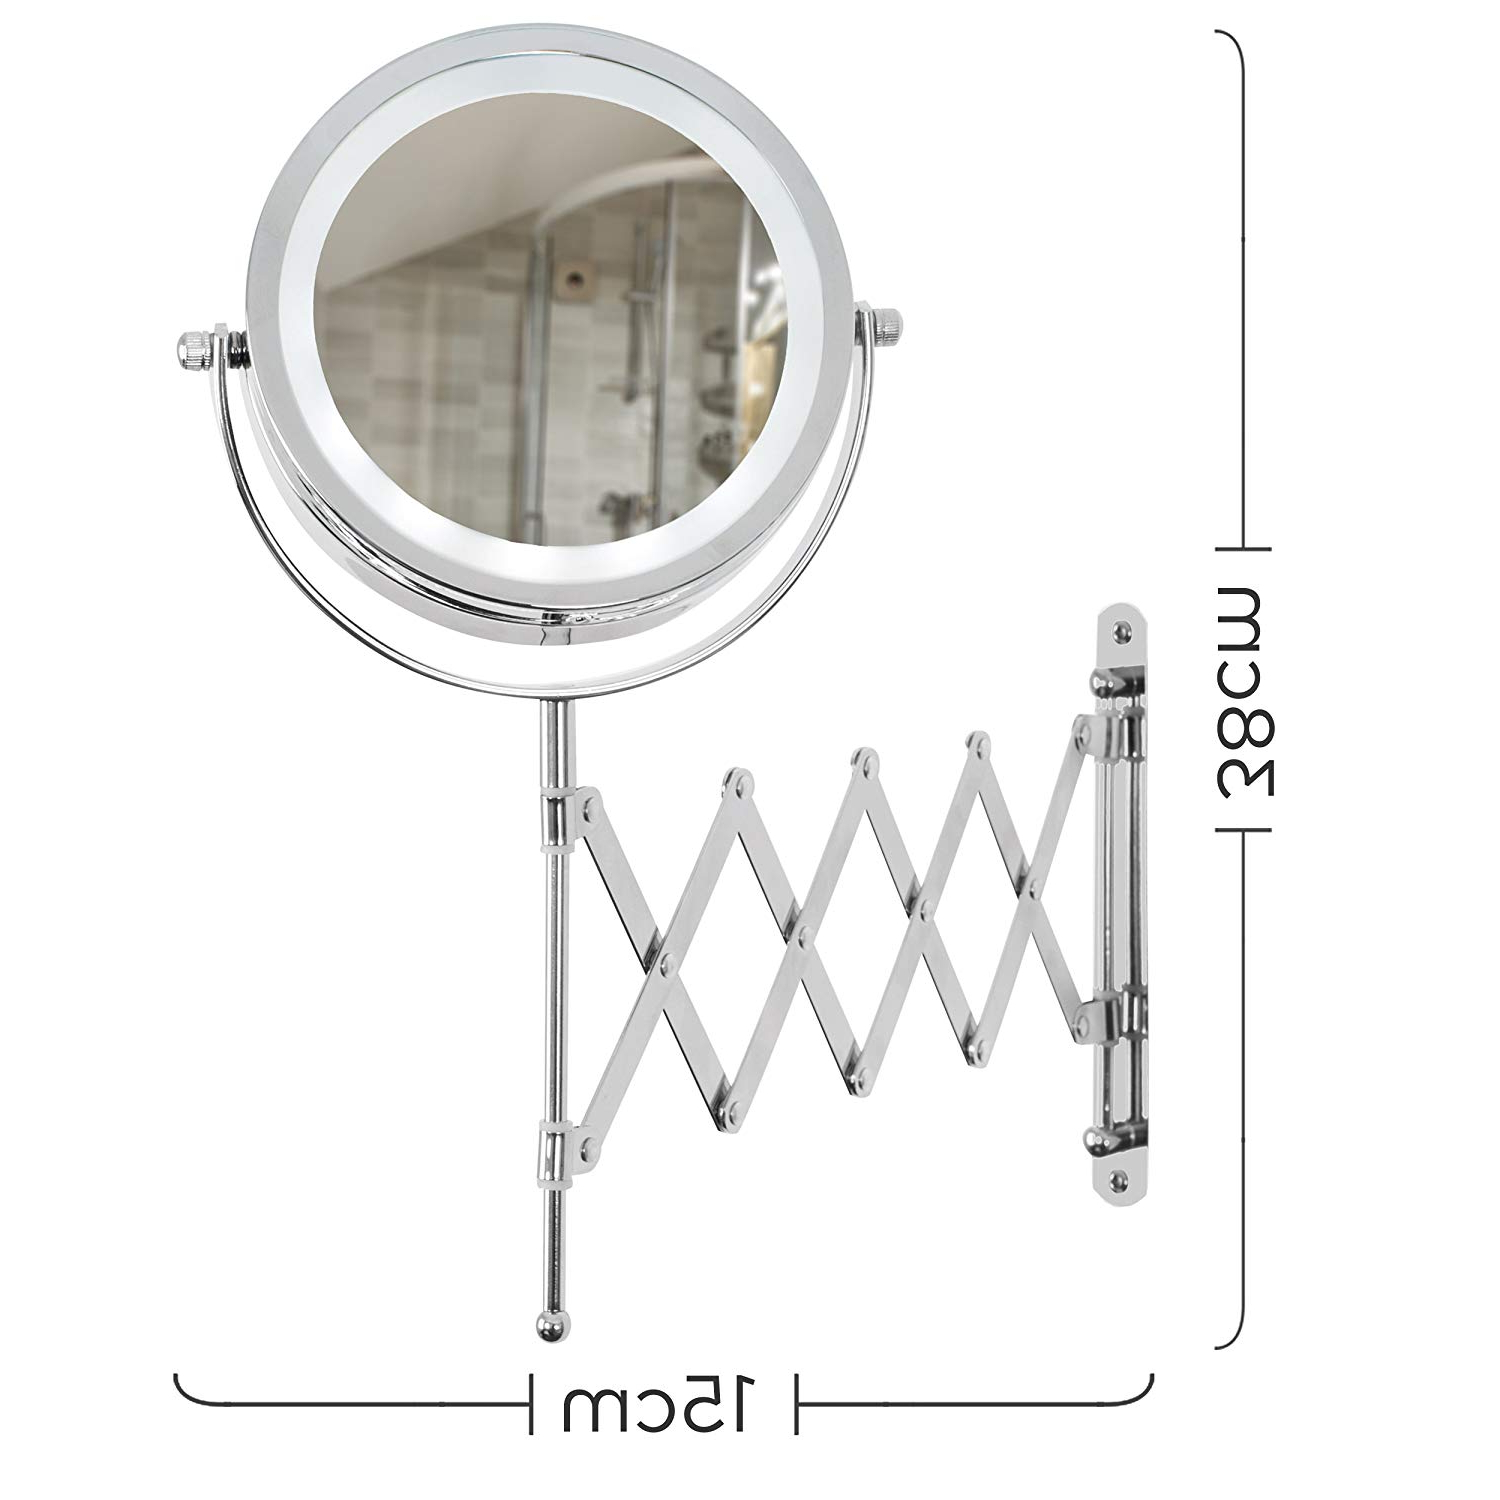 Adjustable Wall Mirrors Pertaining To Famous Adjustable And Extendable Round Chrome Battery Operated Magnifying Bathroom Led Illuminated Make Up Cosmetic Shaving Vanity Wall Mounted Mirror Light (View 3 of 20)